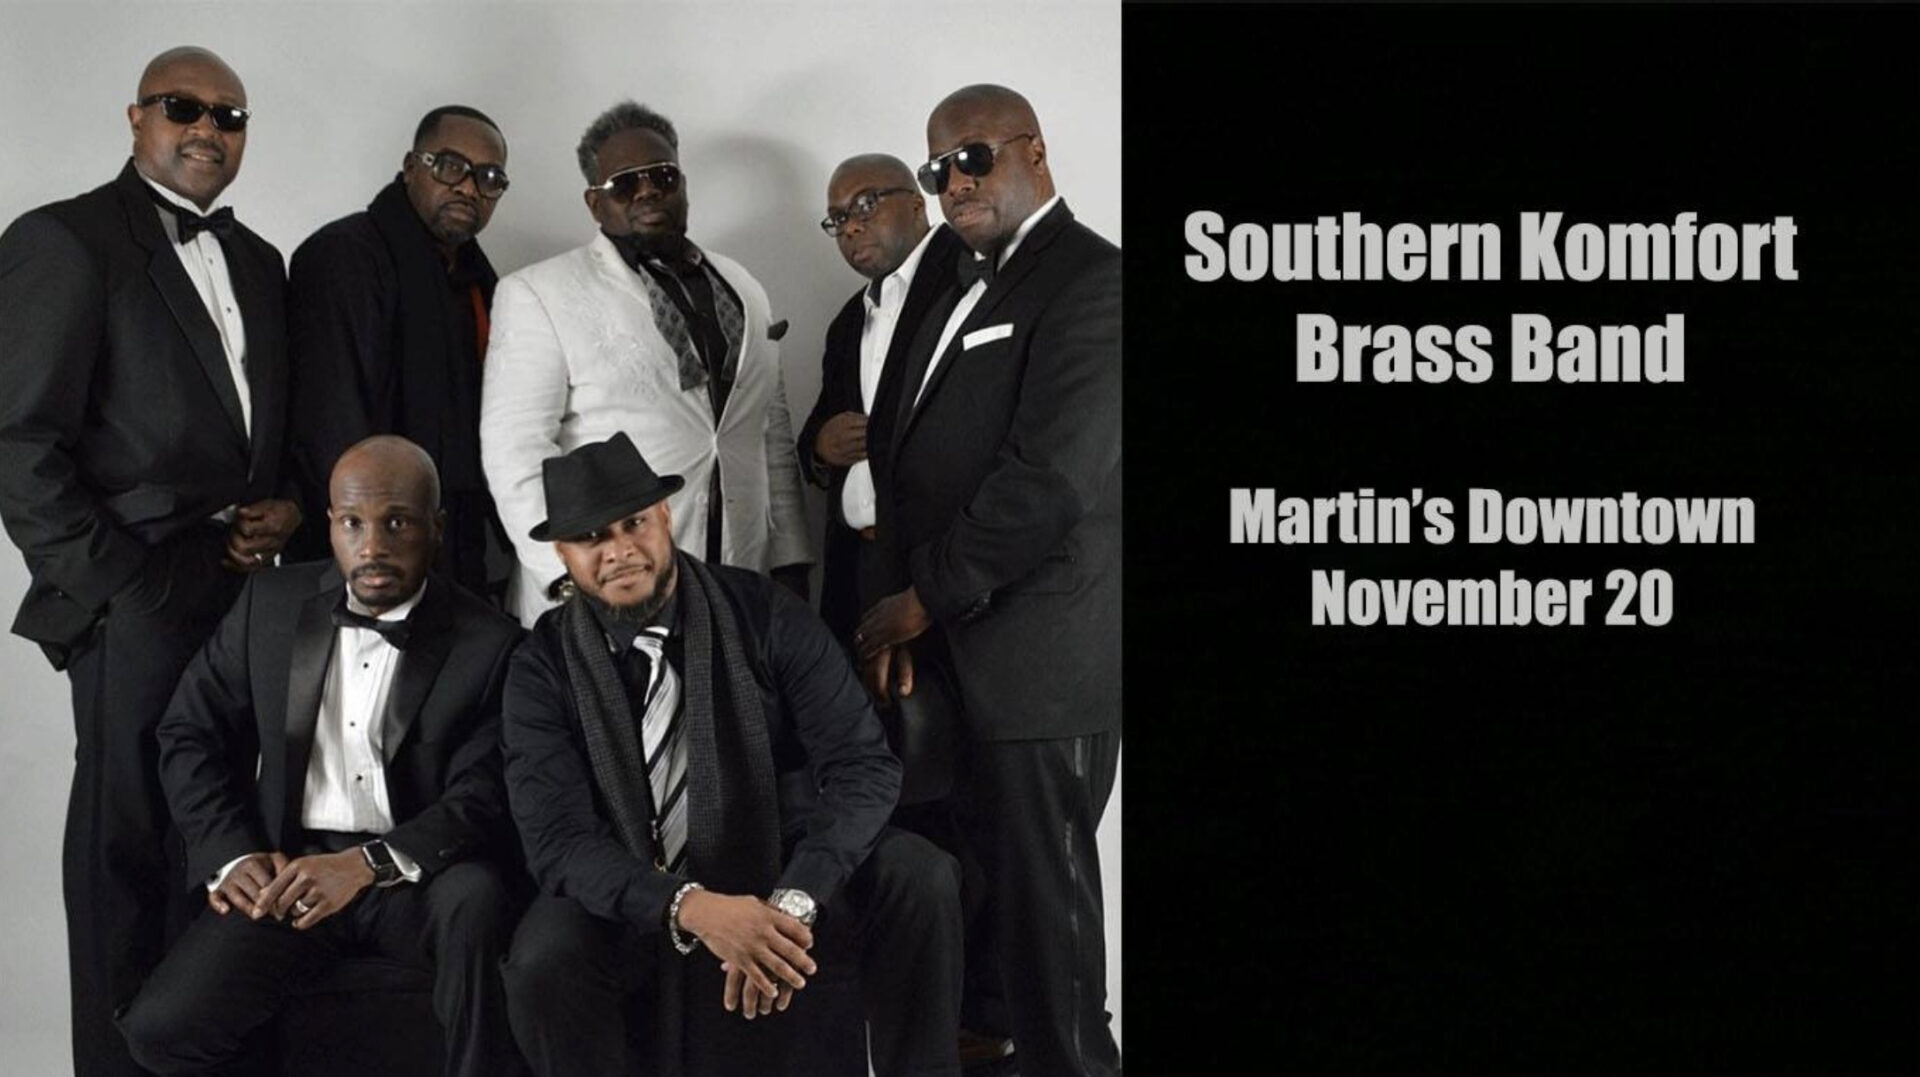 Southern Komfort Brass Band at Martin's Downtown